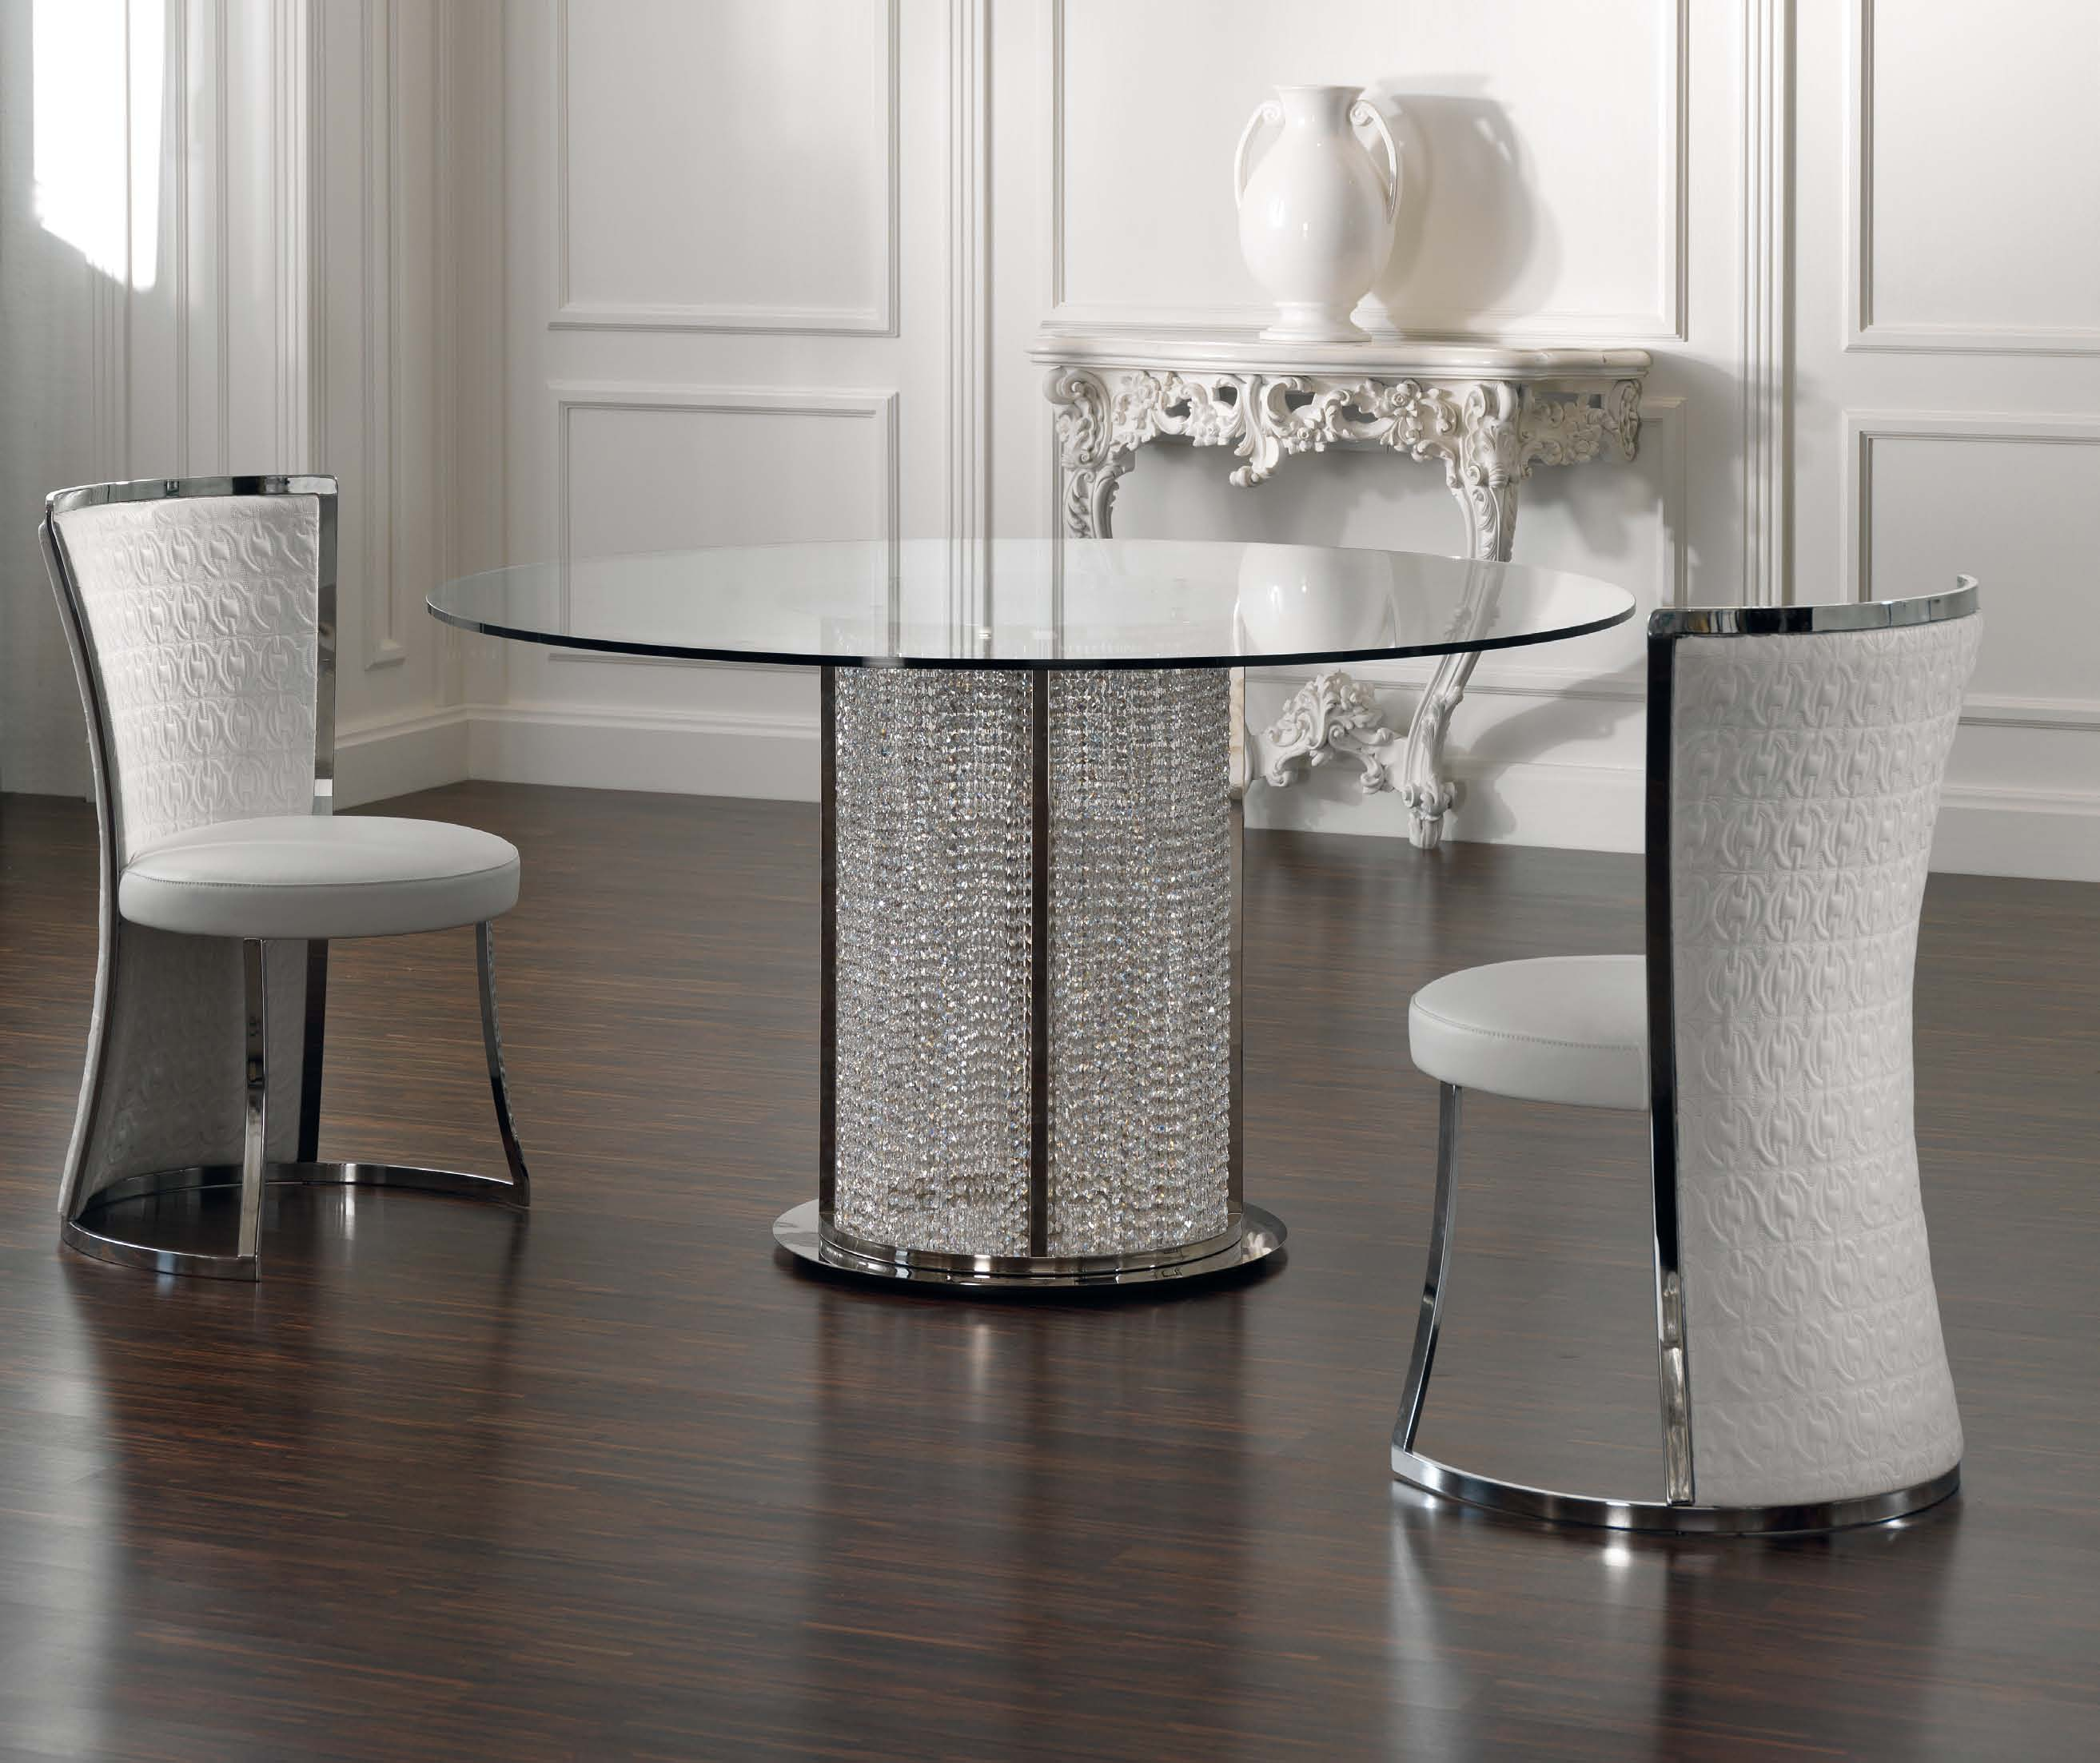 Dining Room Supervisor Job Description: Dining Table Round With Crystal Pendants Eliza, Tosconova